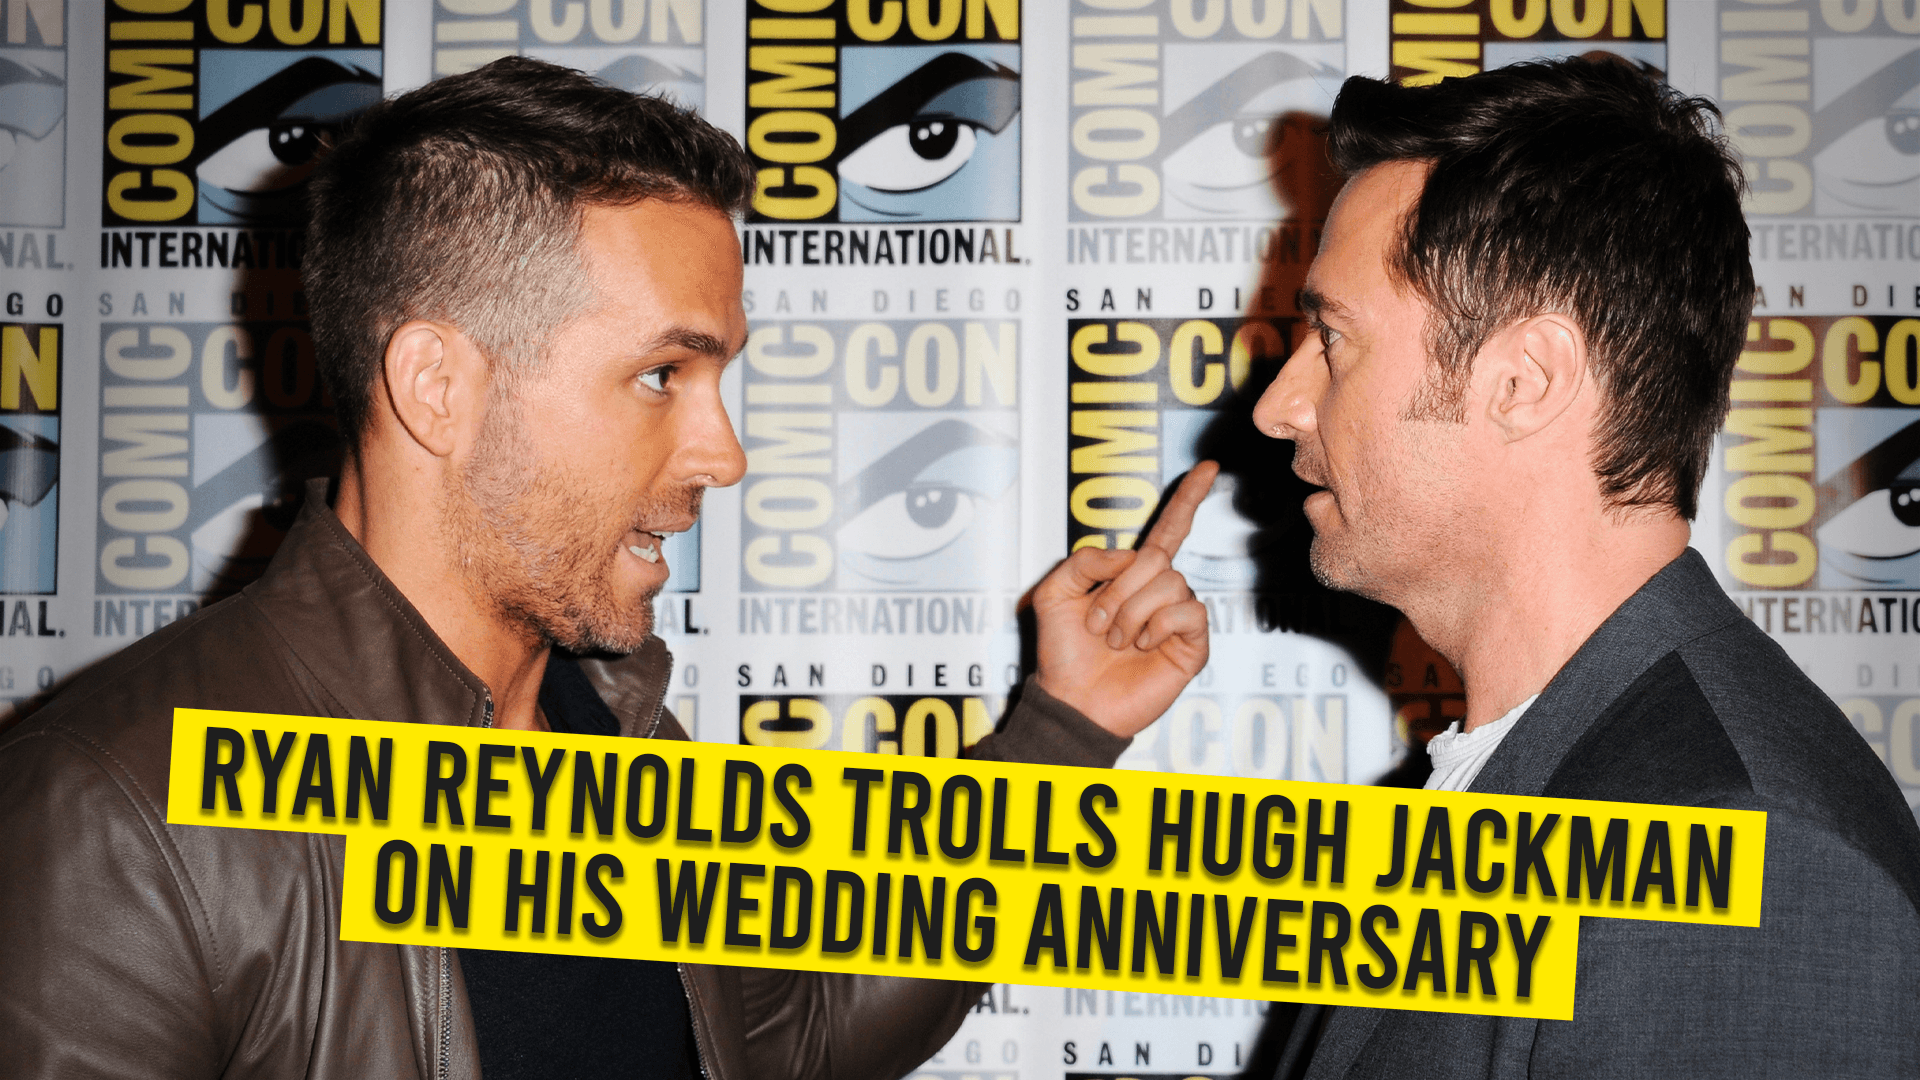 Ryan Reynolds Trolls Hugh Jackman on his Wedding Anniversary